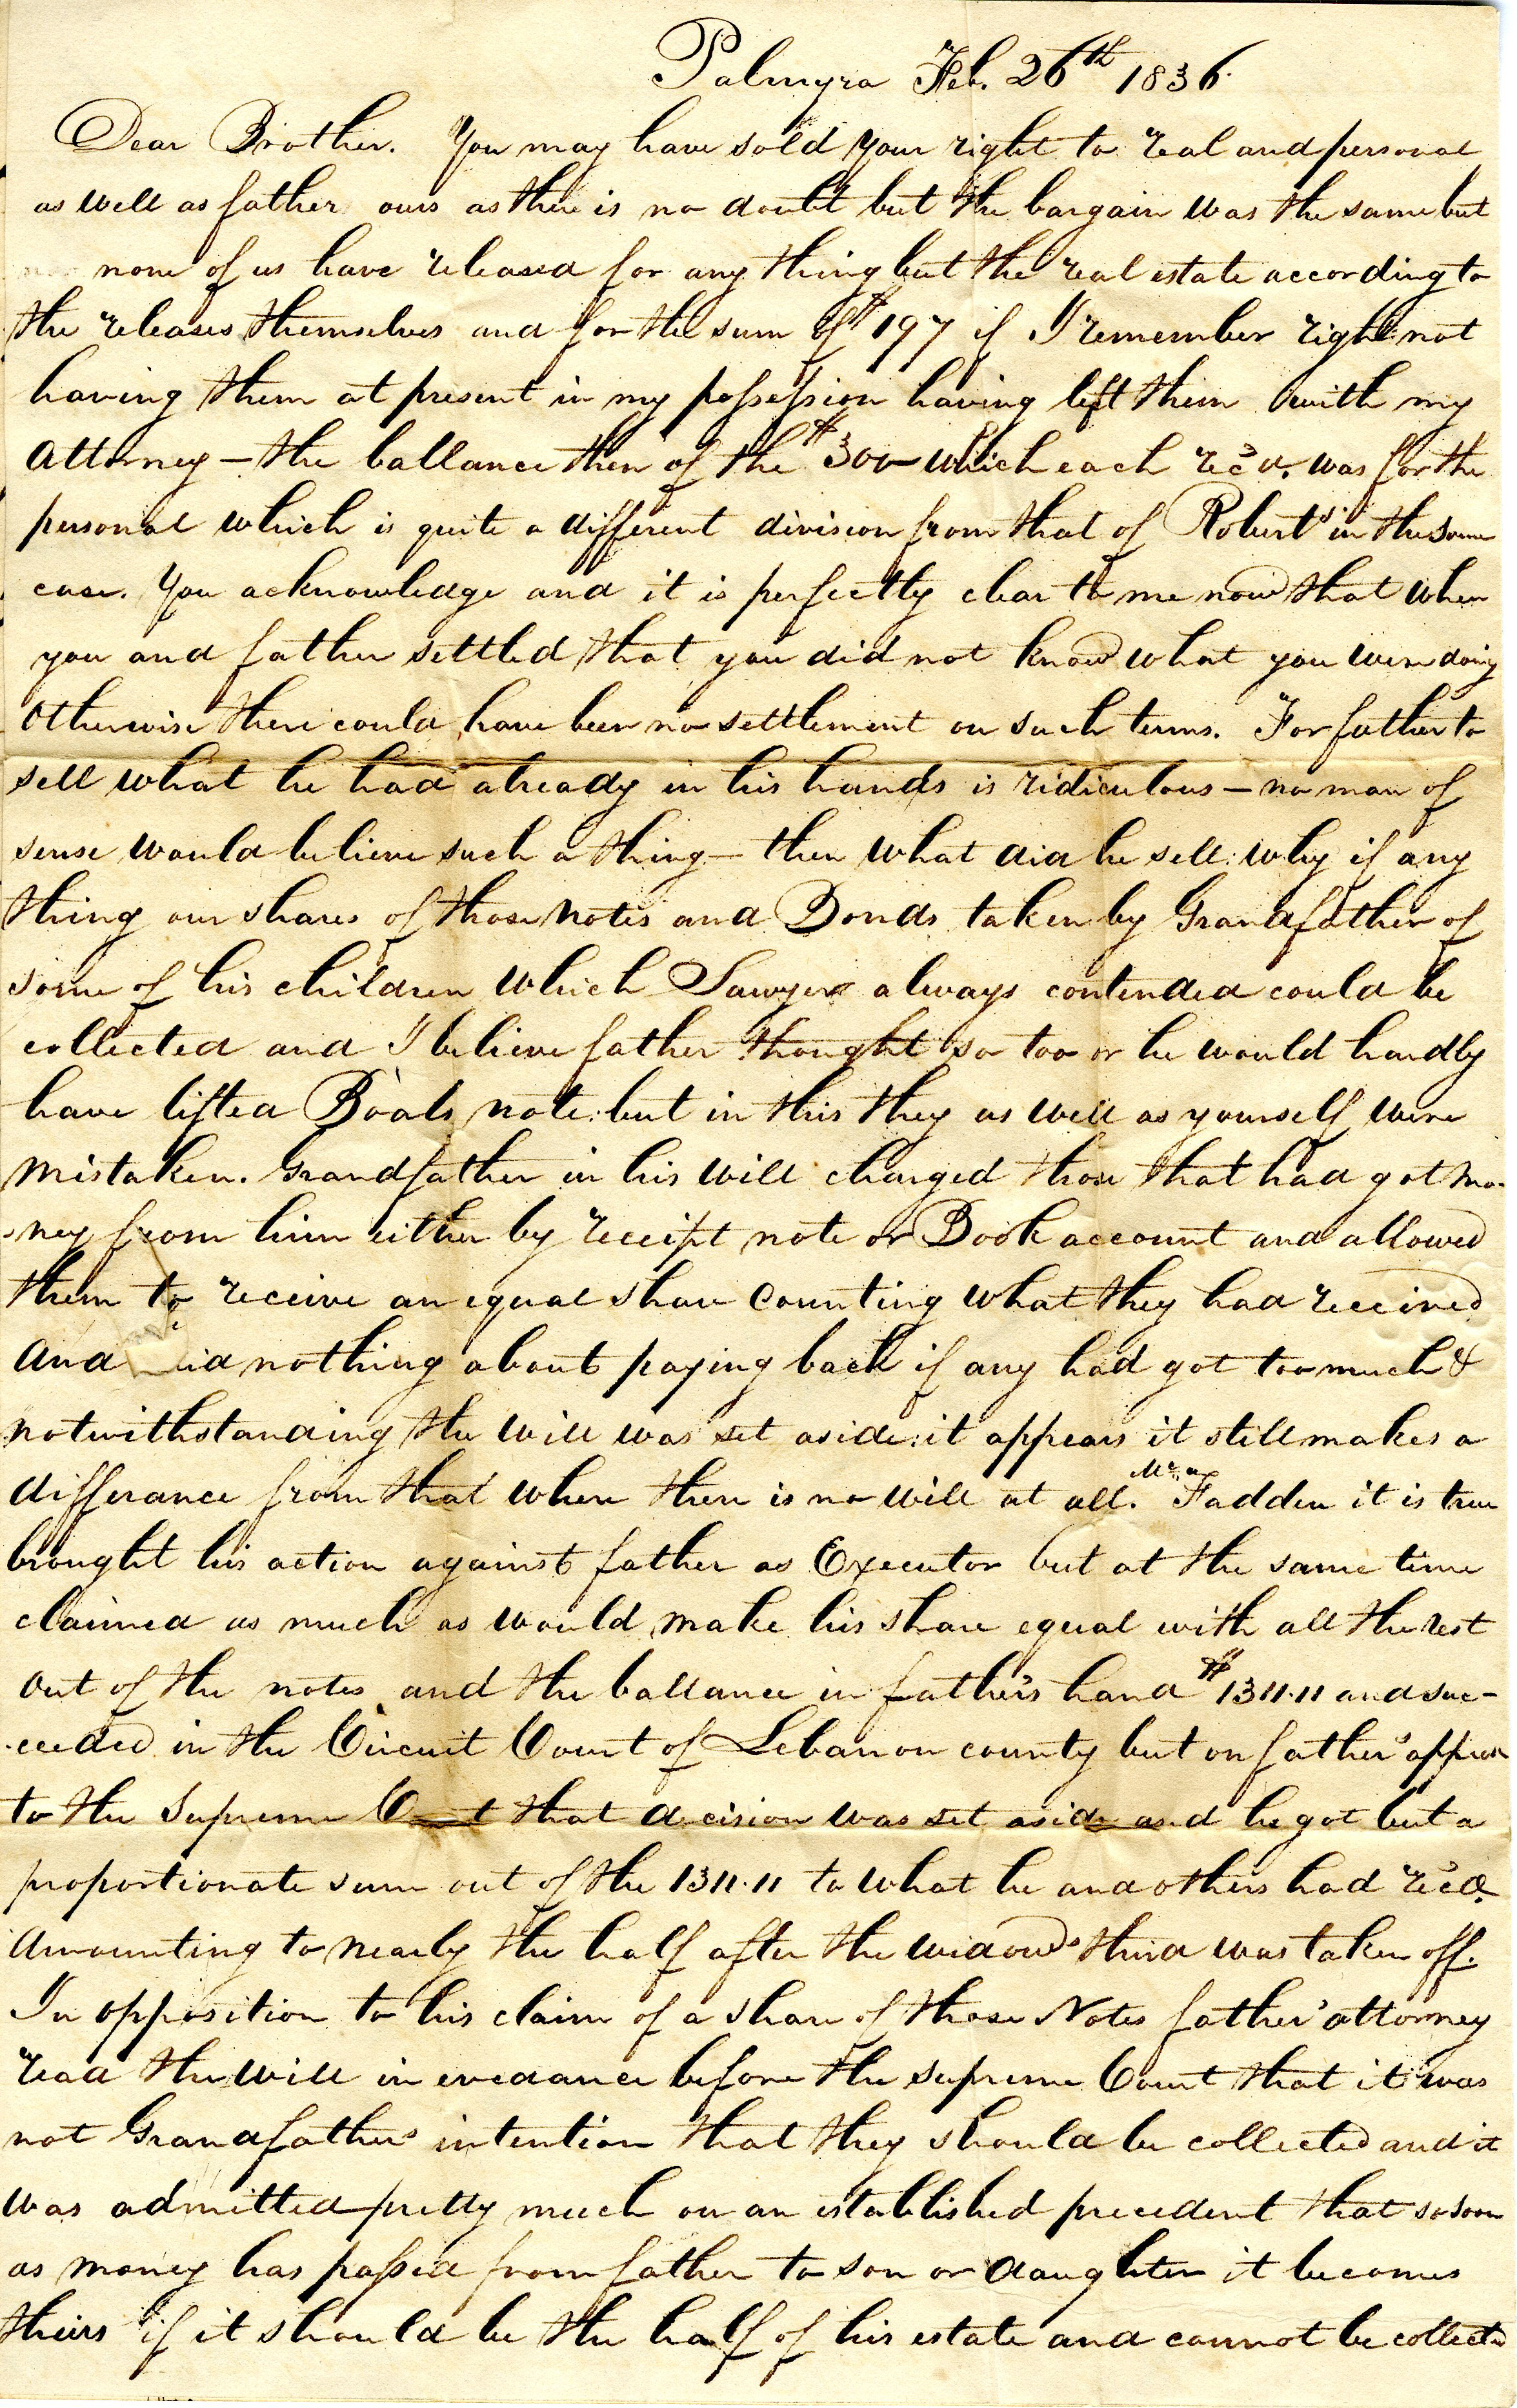 Letter From William Geddes to John Geddes, February 26, 1836 image